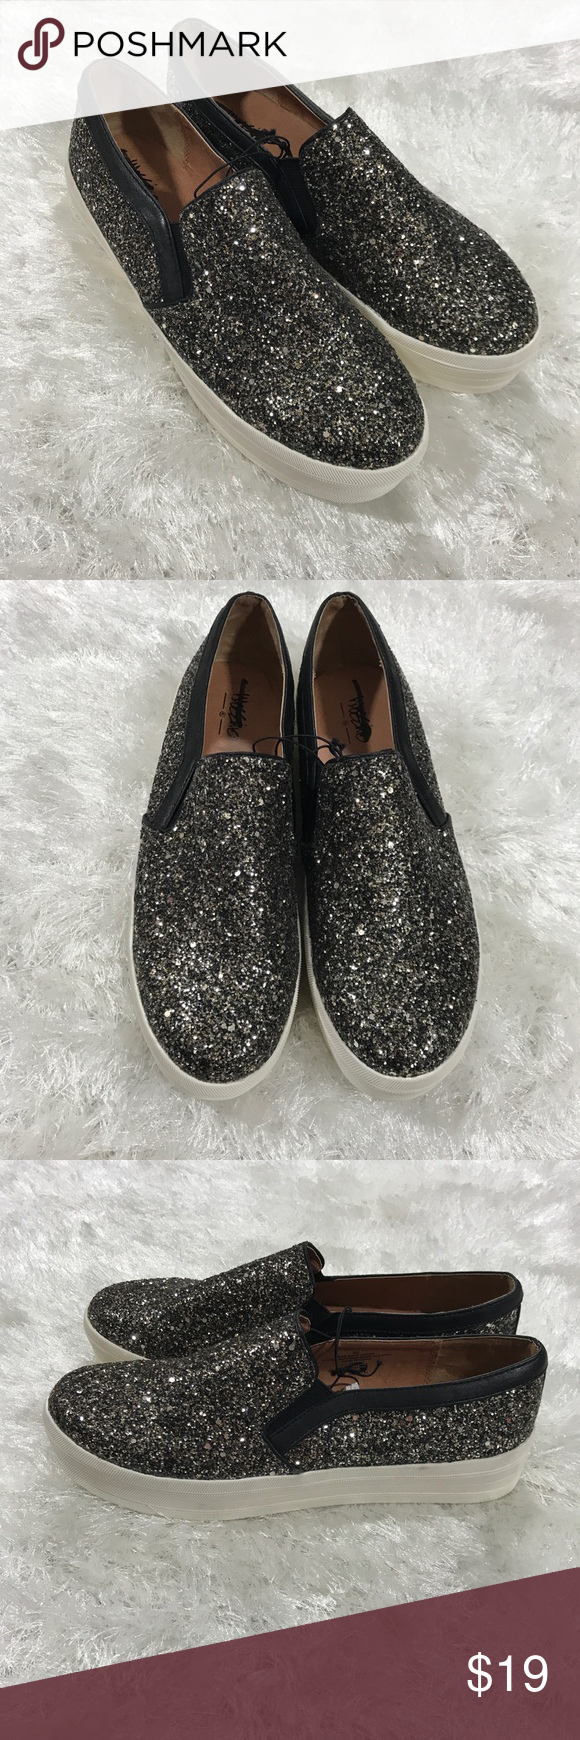 421c43eae39 Mossimo Sparkly Glitter High Platform Slip On Shoe Mossimo Sparkly Glitter  High Platform Slip On Shoes